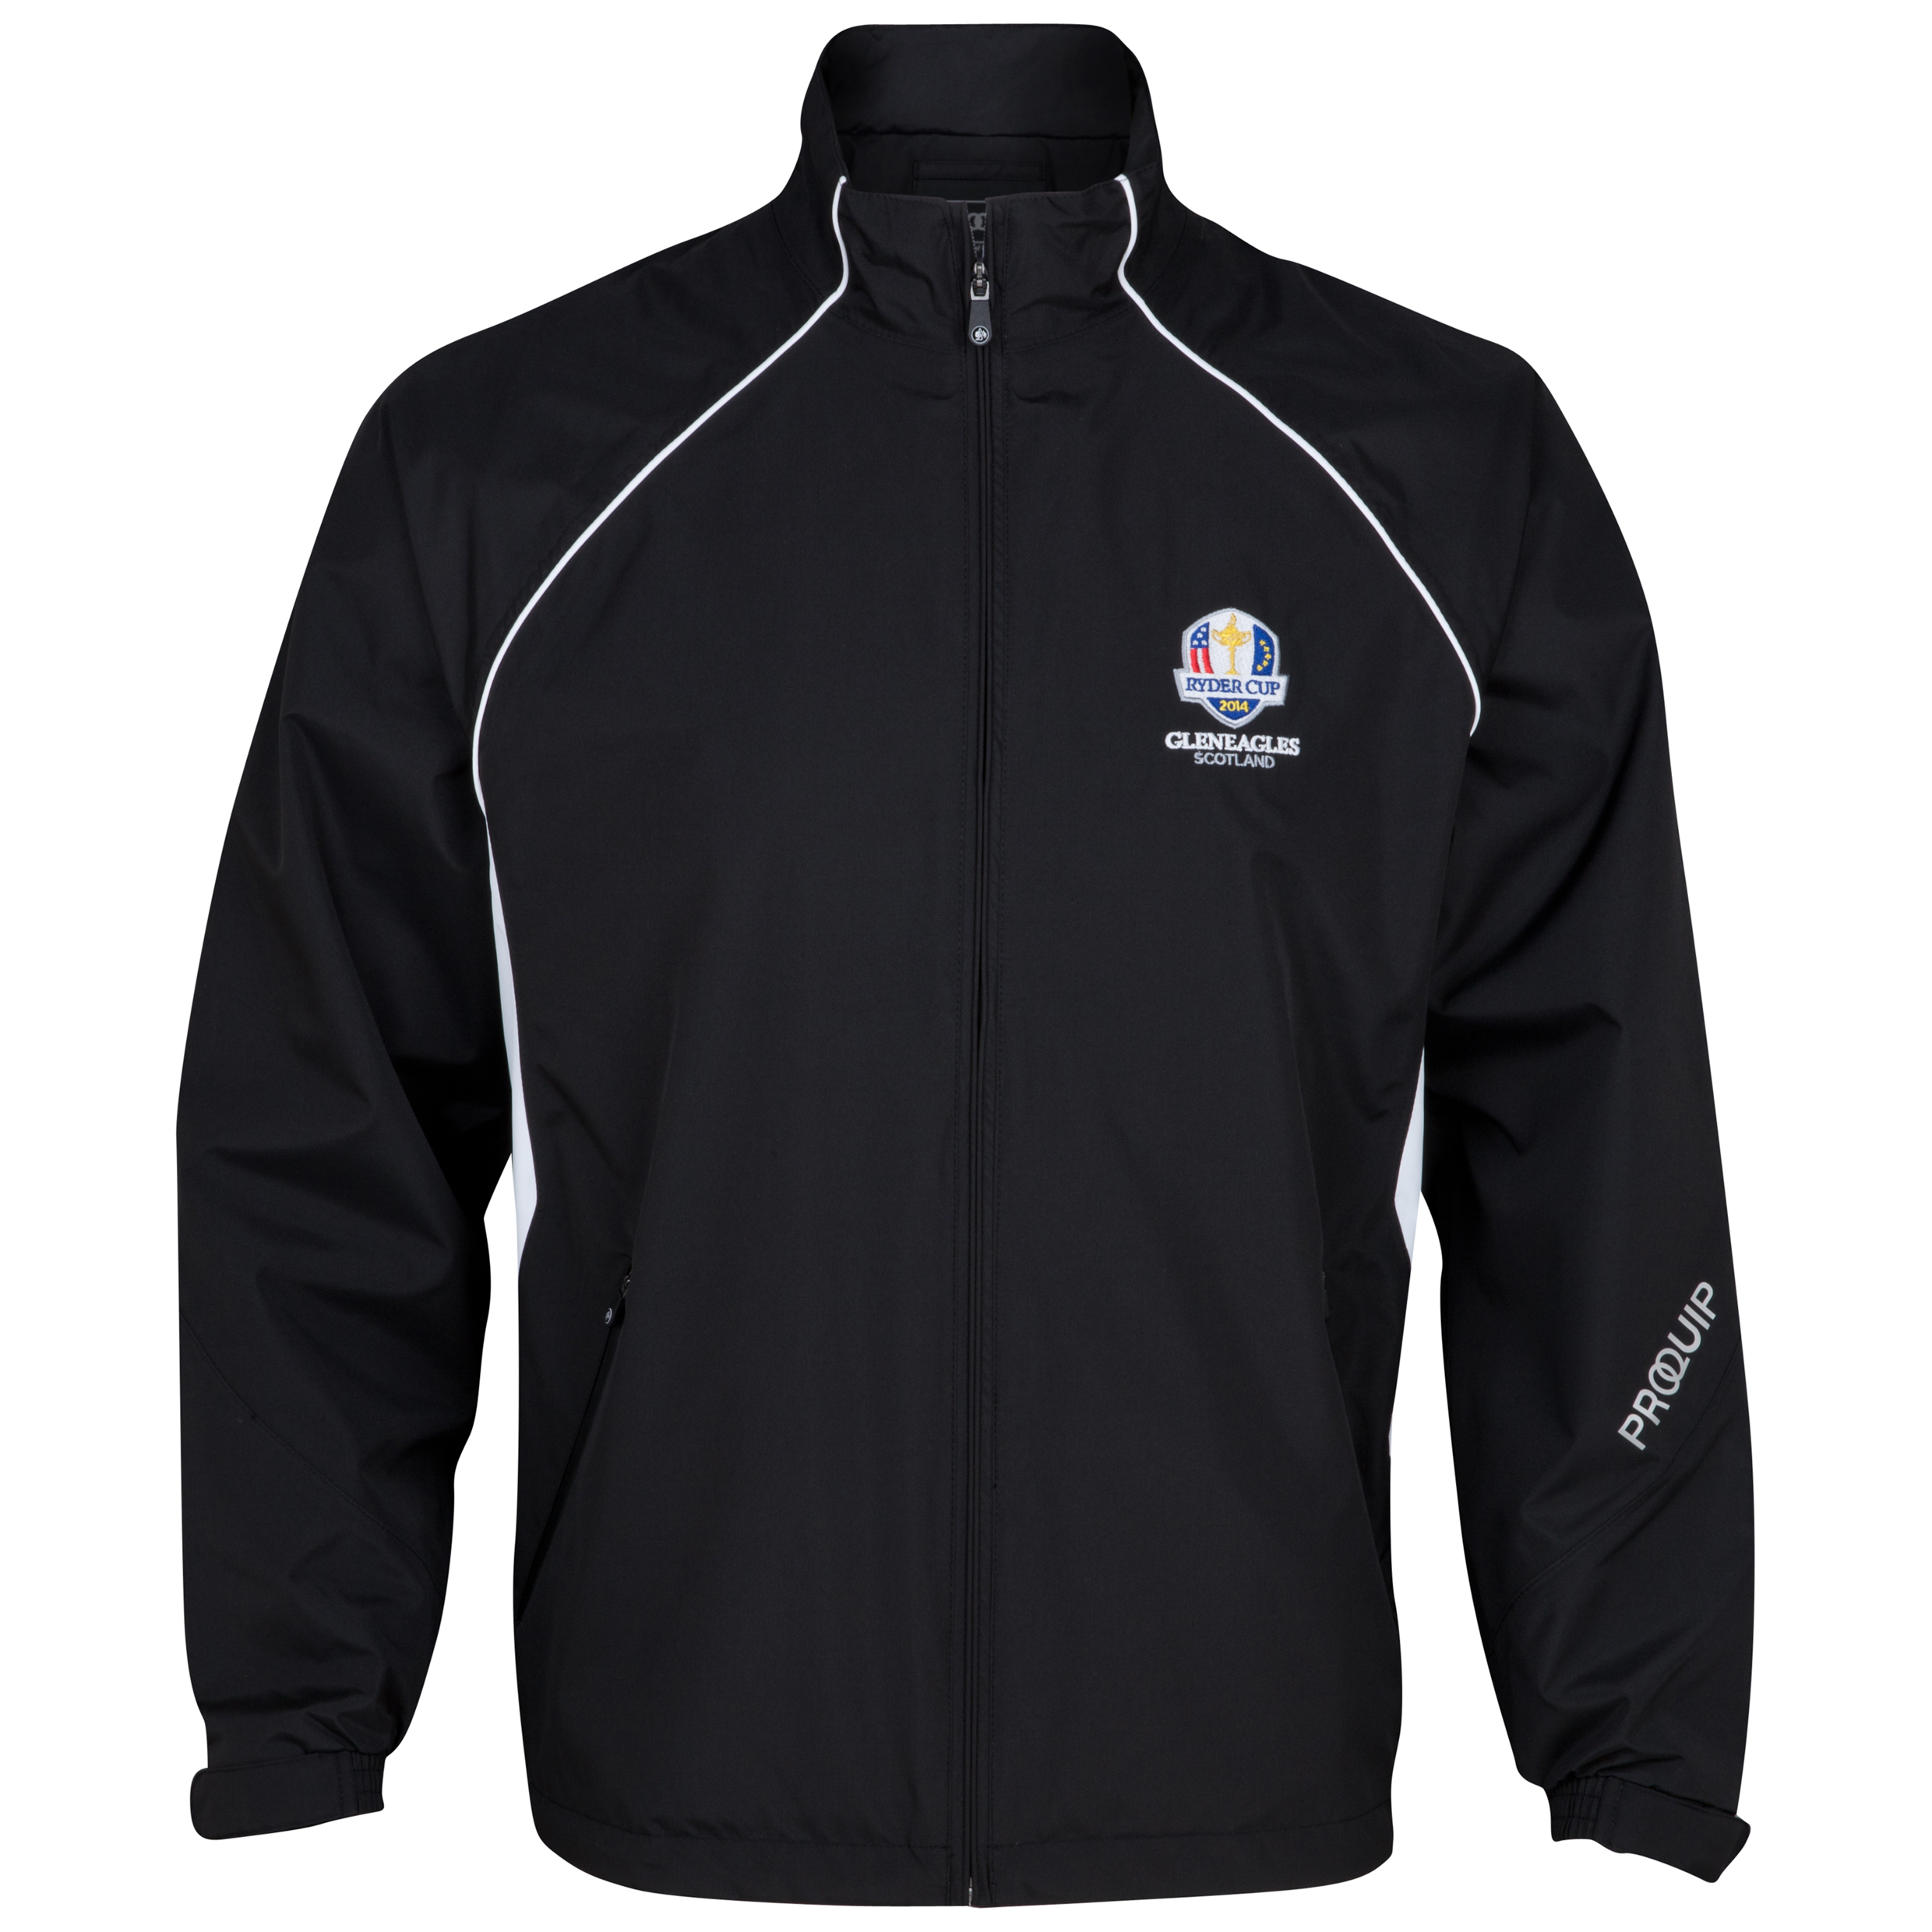 The Ryder Cup Gleneagles 2014 Pro-Quip Ultralite Europa Waterproof Jacket - Black/White